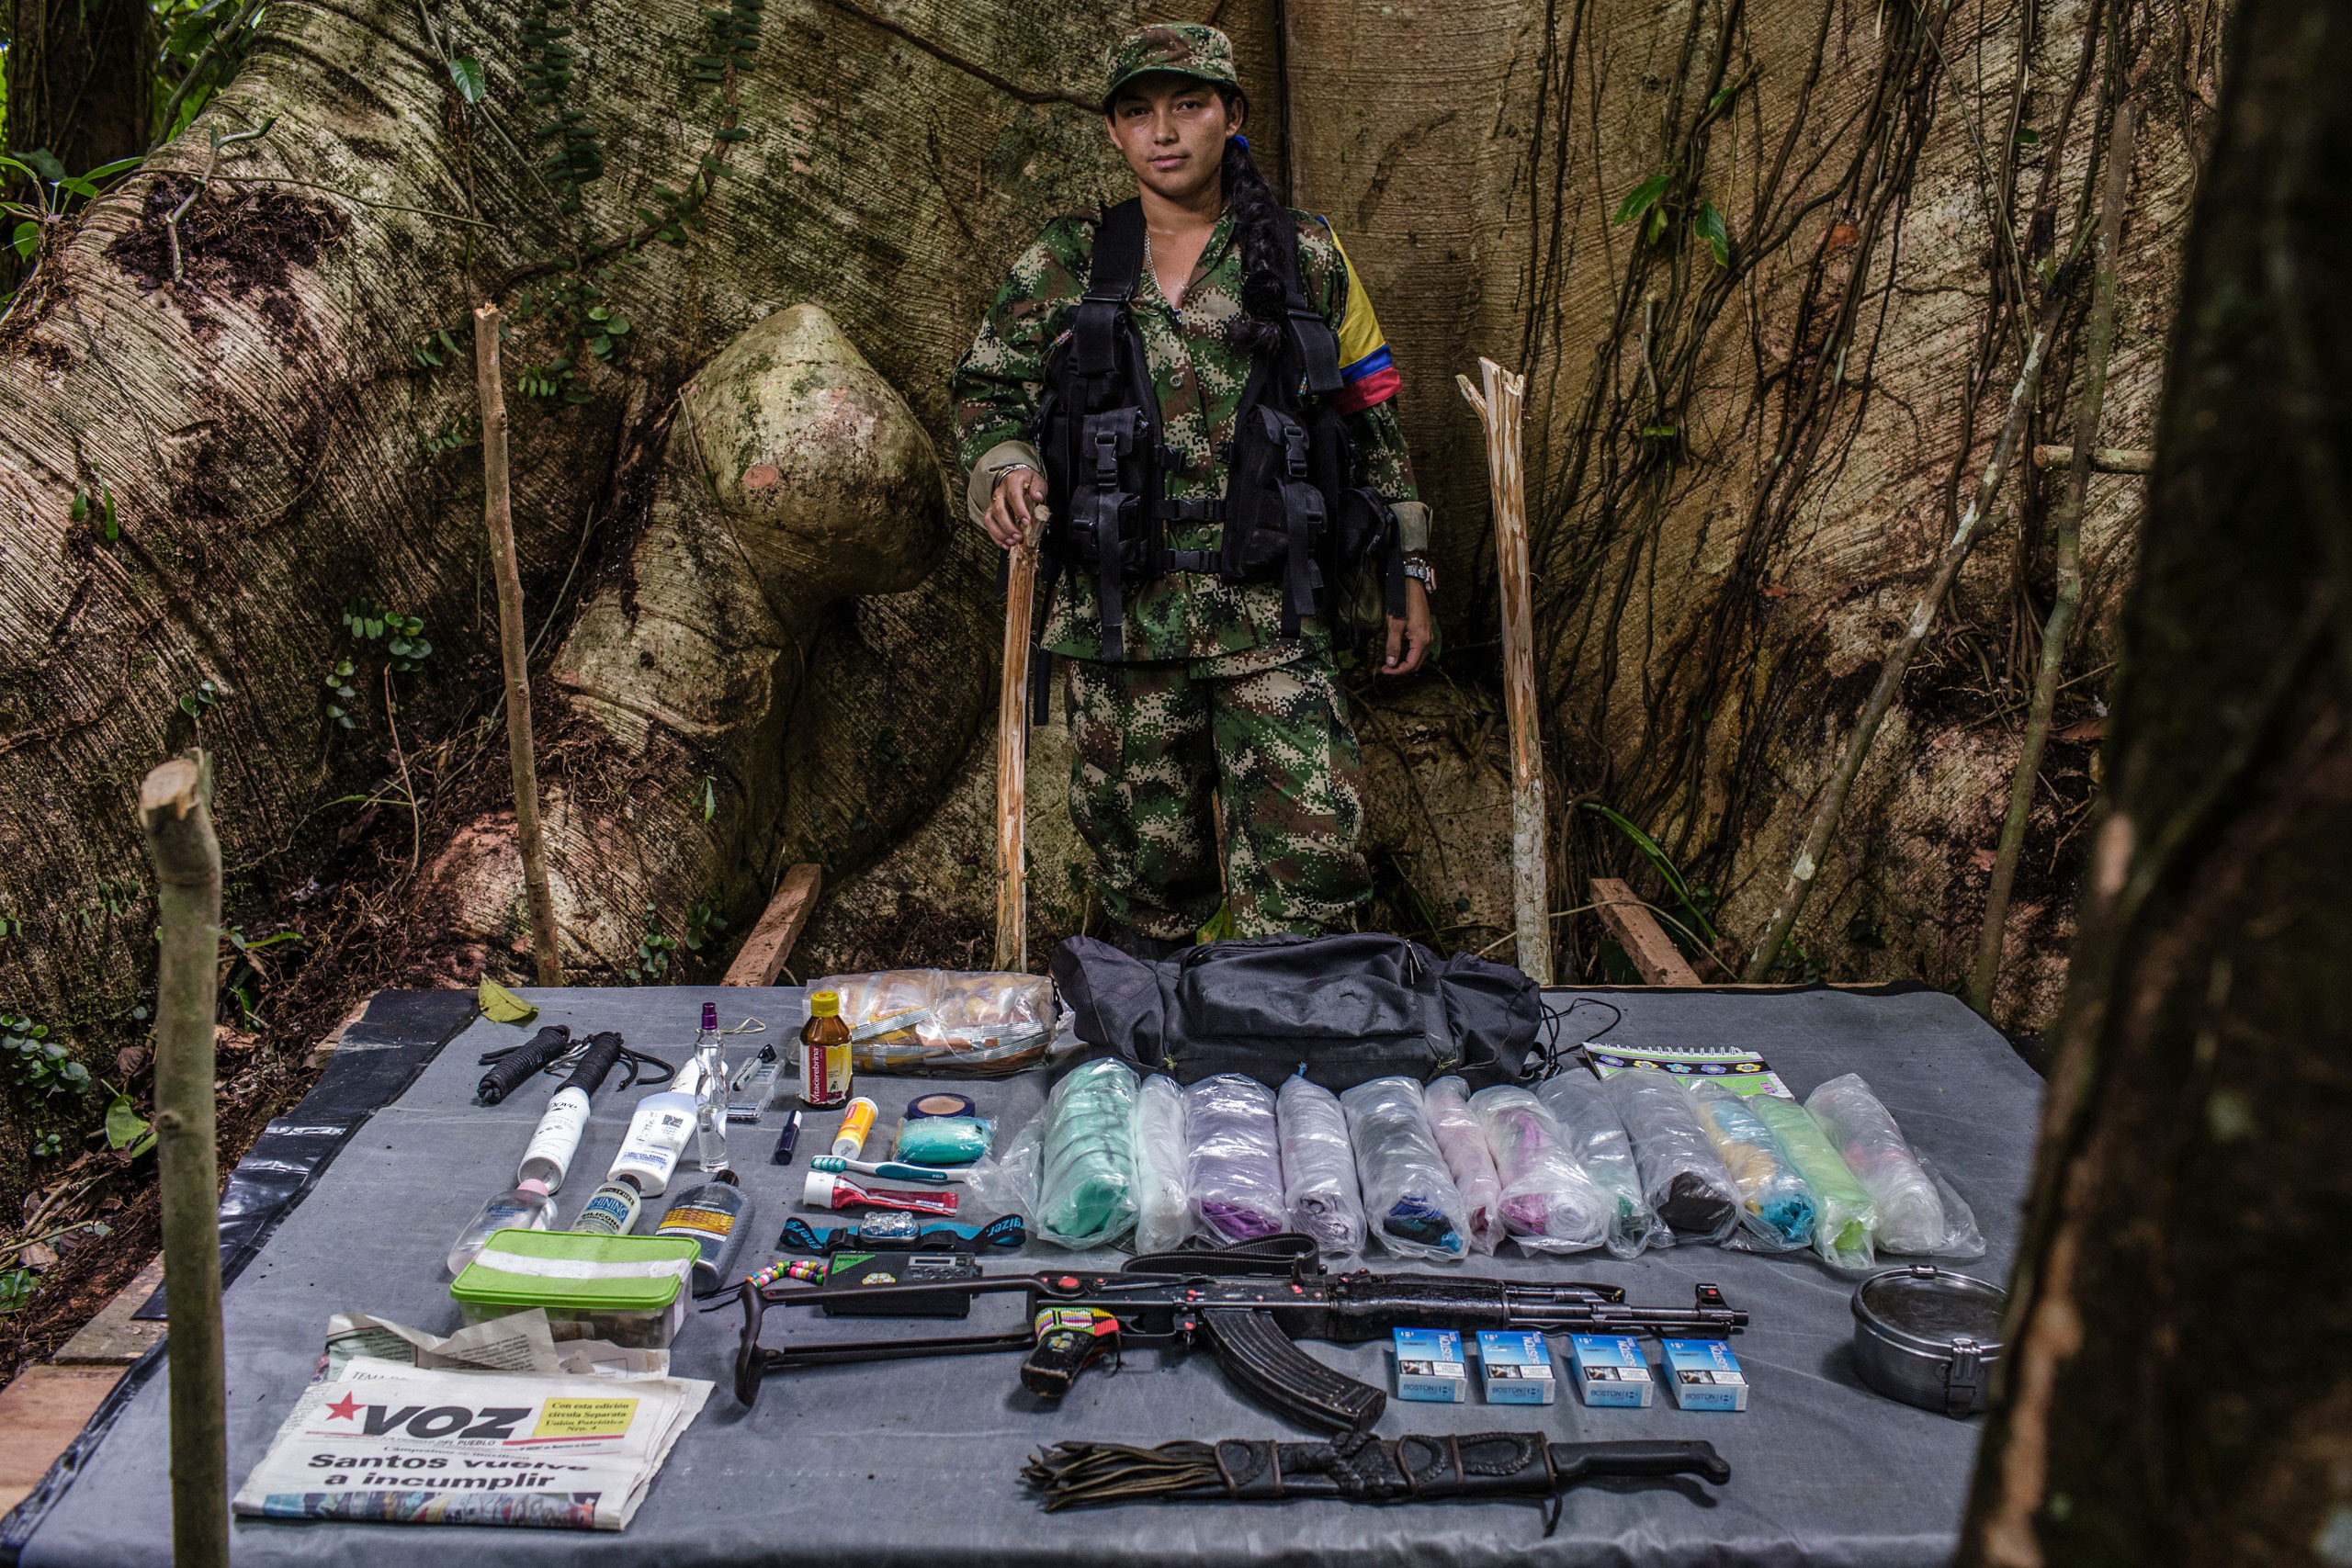 Mariana , 24-years old, has been with FARC for five years.                               She joined FARC because she was a victim of paramilitary violence in northern Colombia.